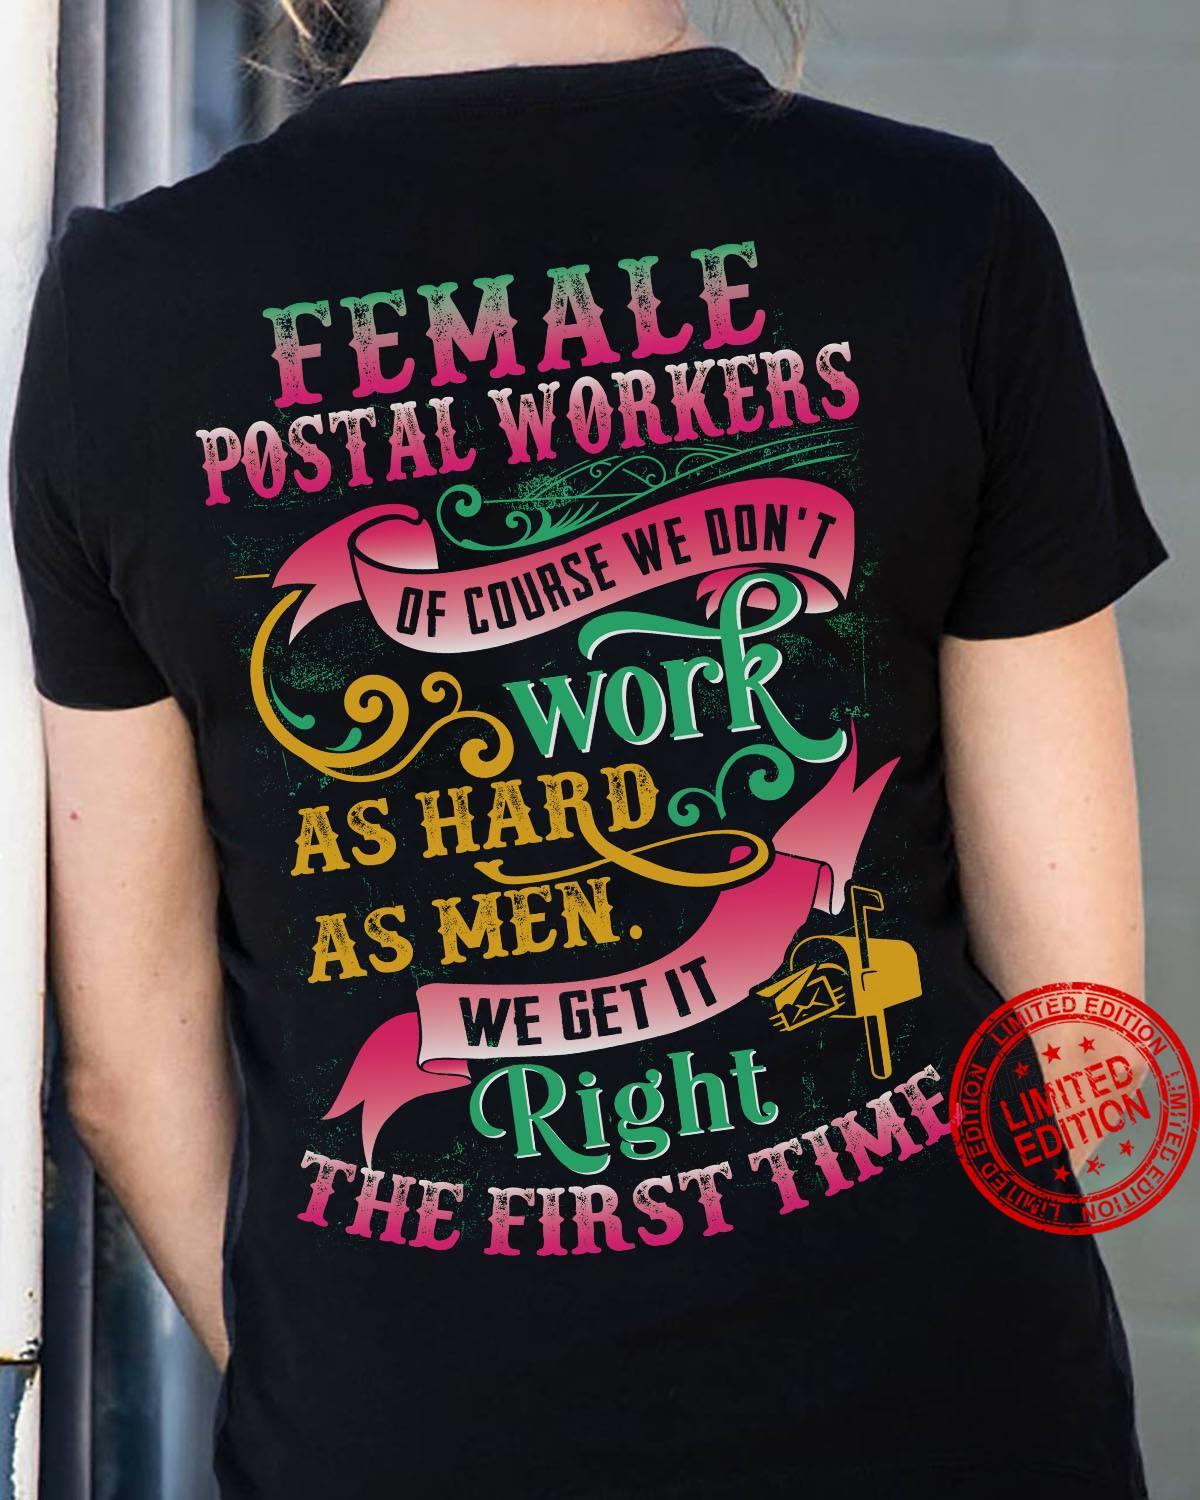 Female Postal Workers Or Course We Don't Work As Hard As Men Shirt